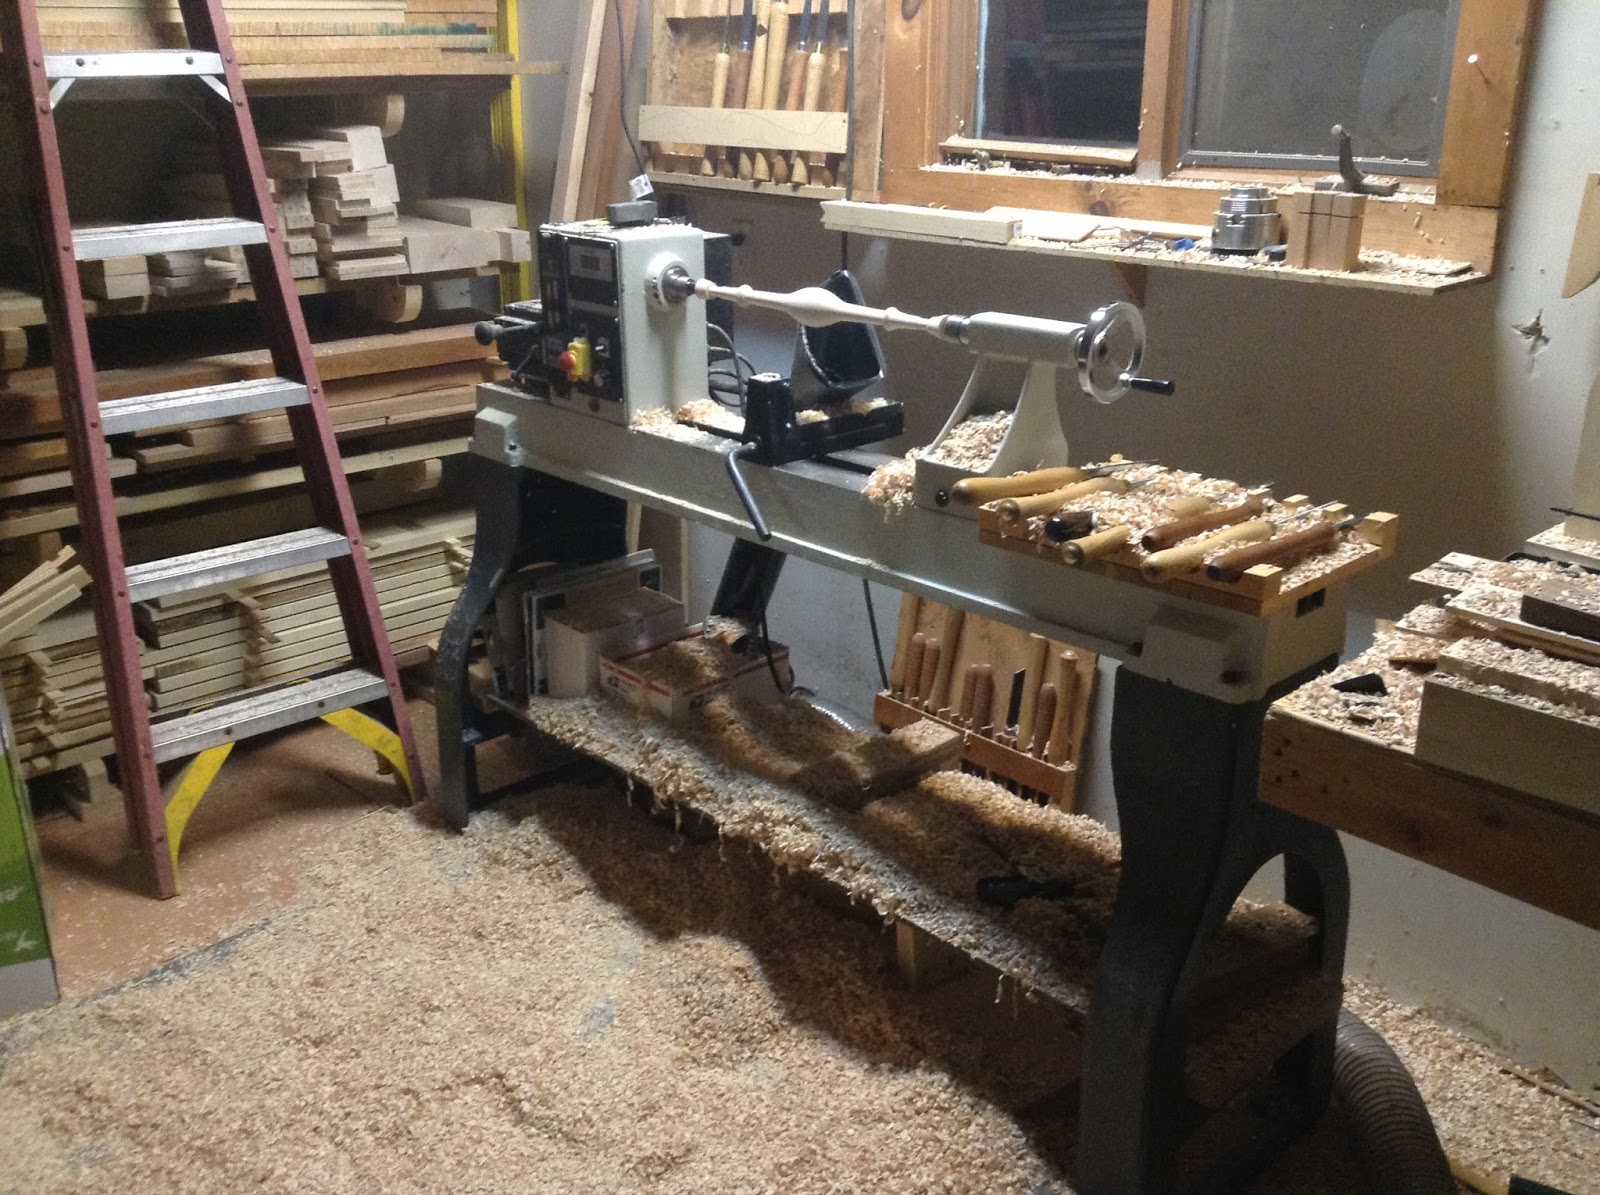 lathe for turning furniture parts